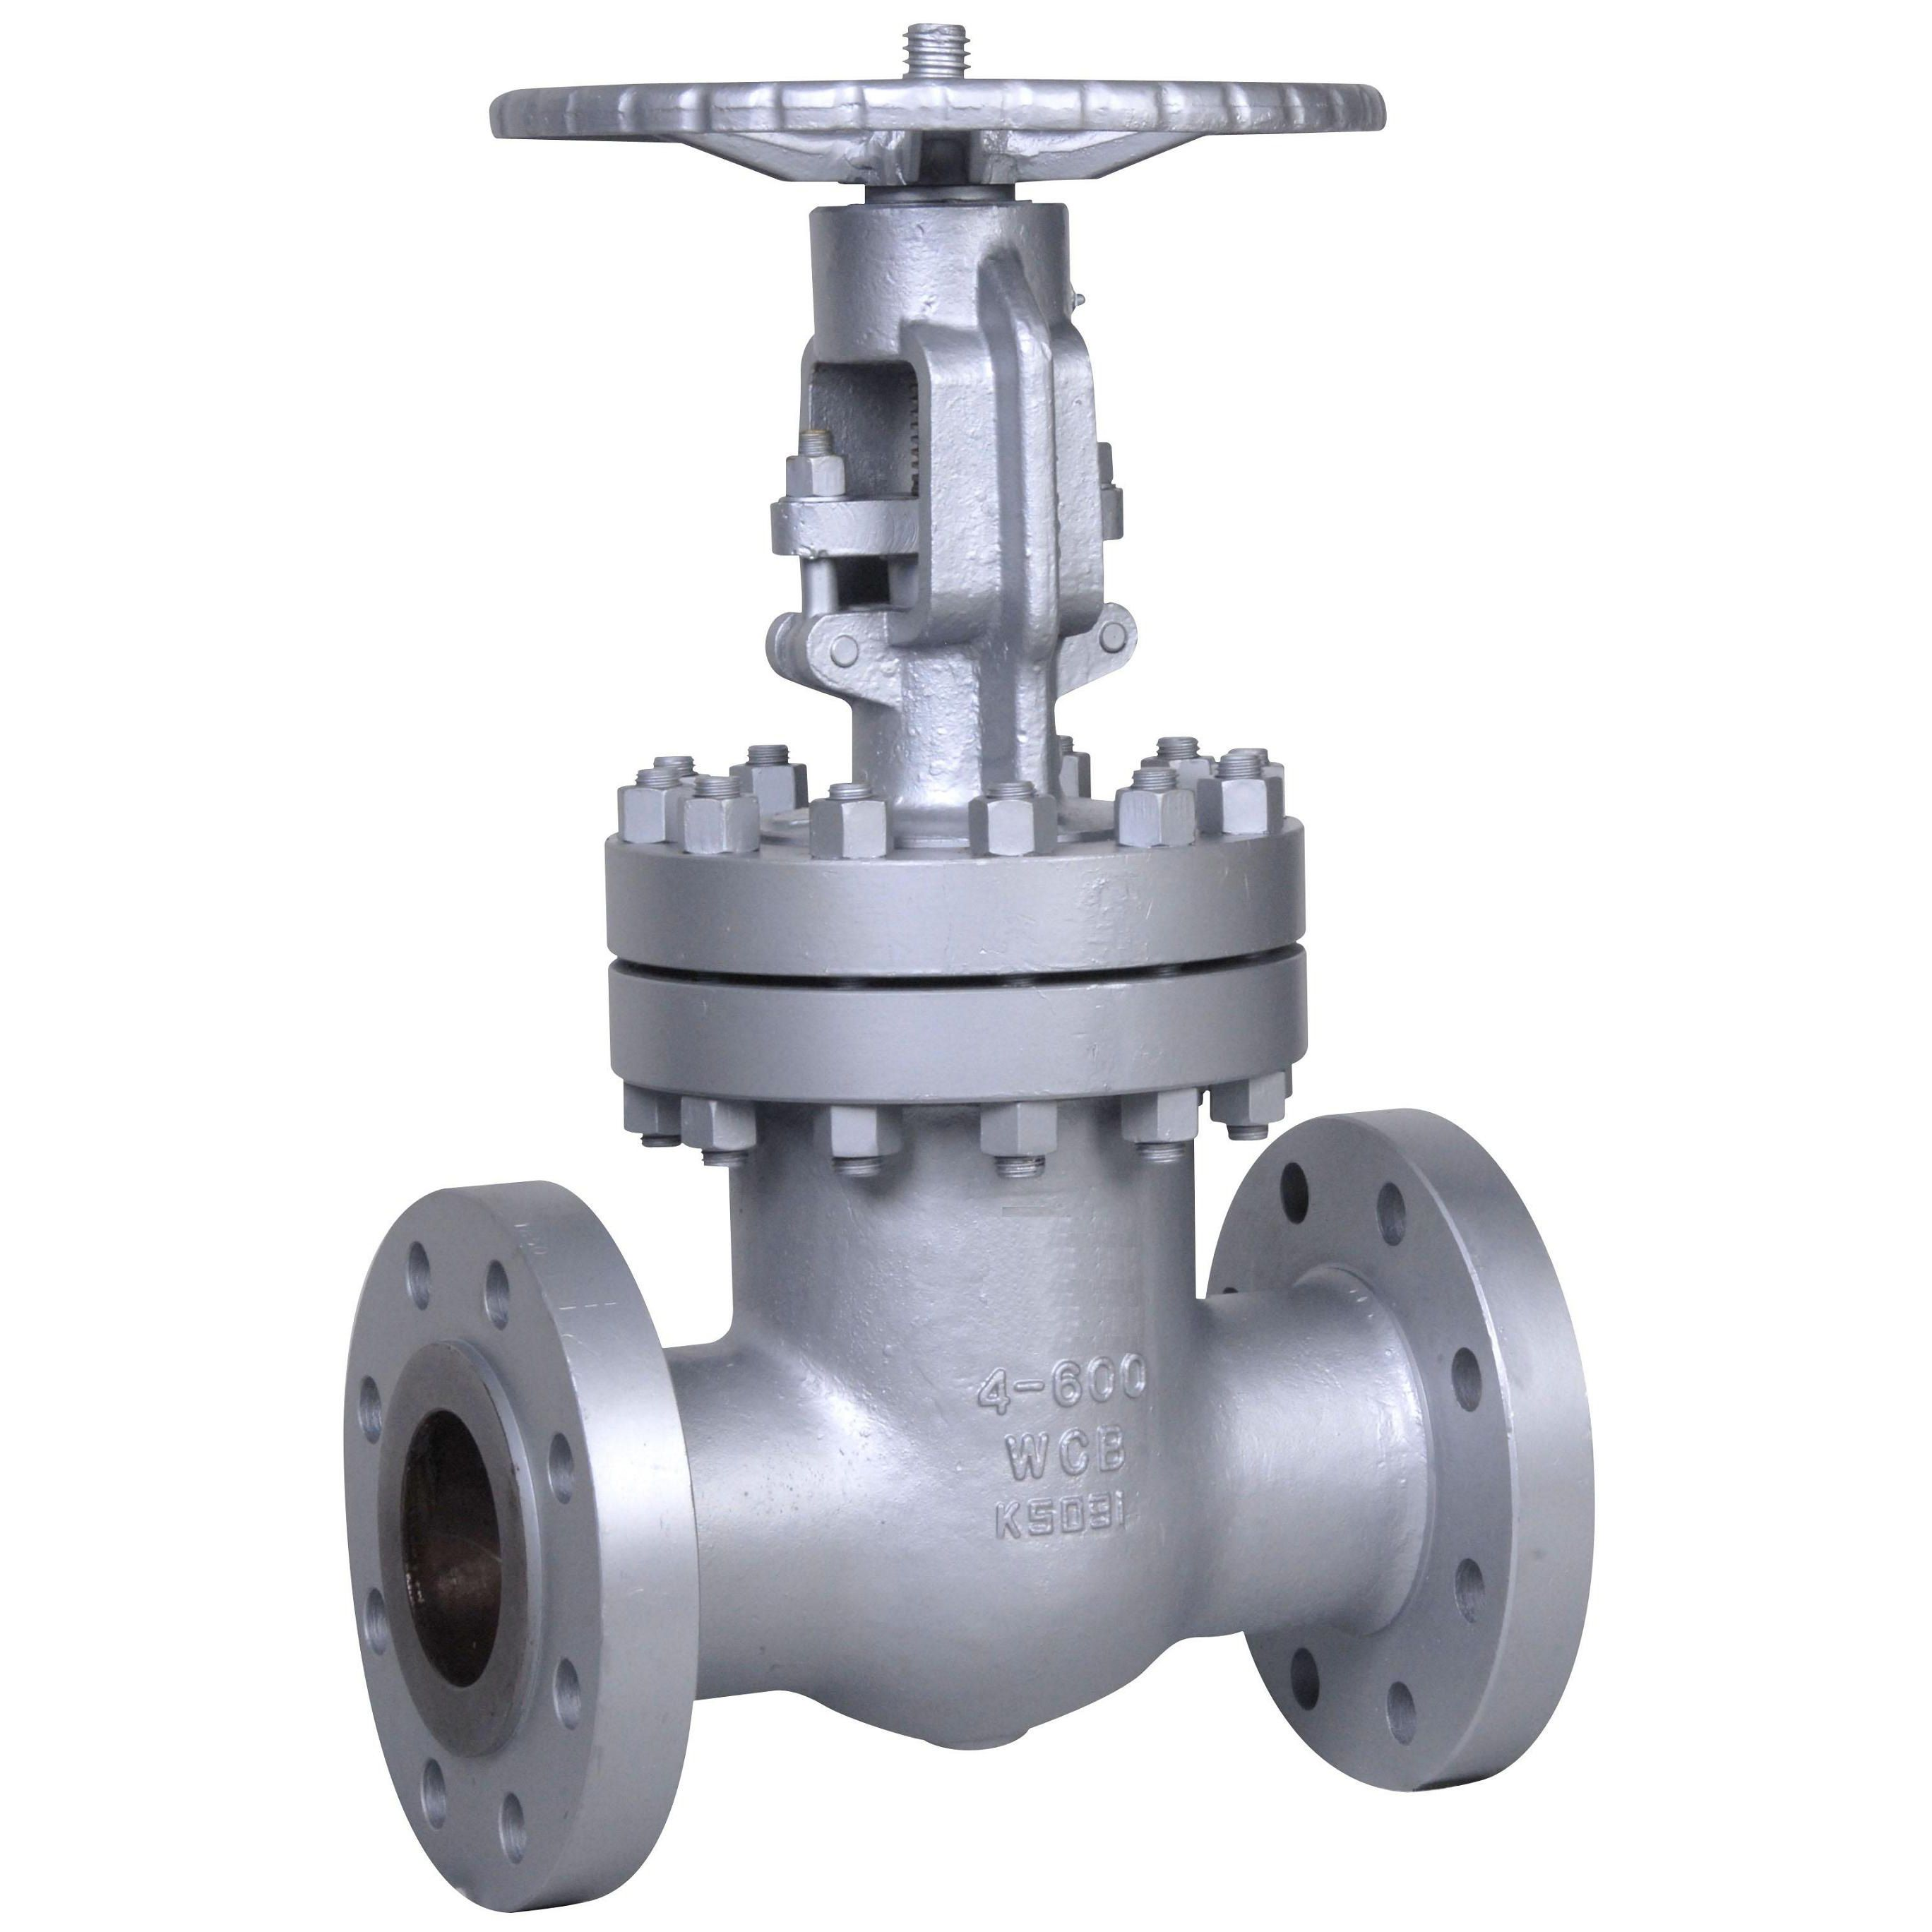 Do You Need Valves For Your Home Factory Or Any Other Residential Place We Have Many Best Options For You Gate Valve Safety Valve Valve